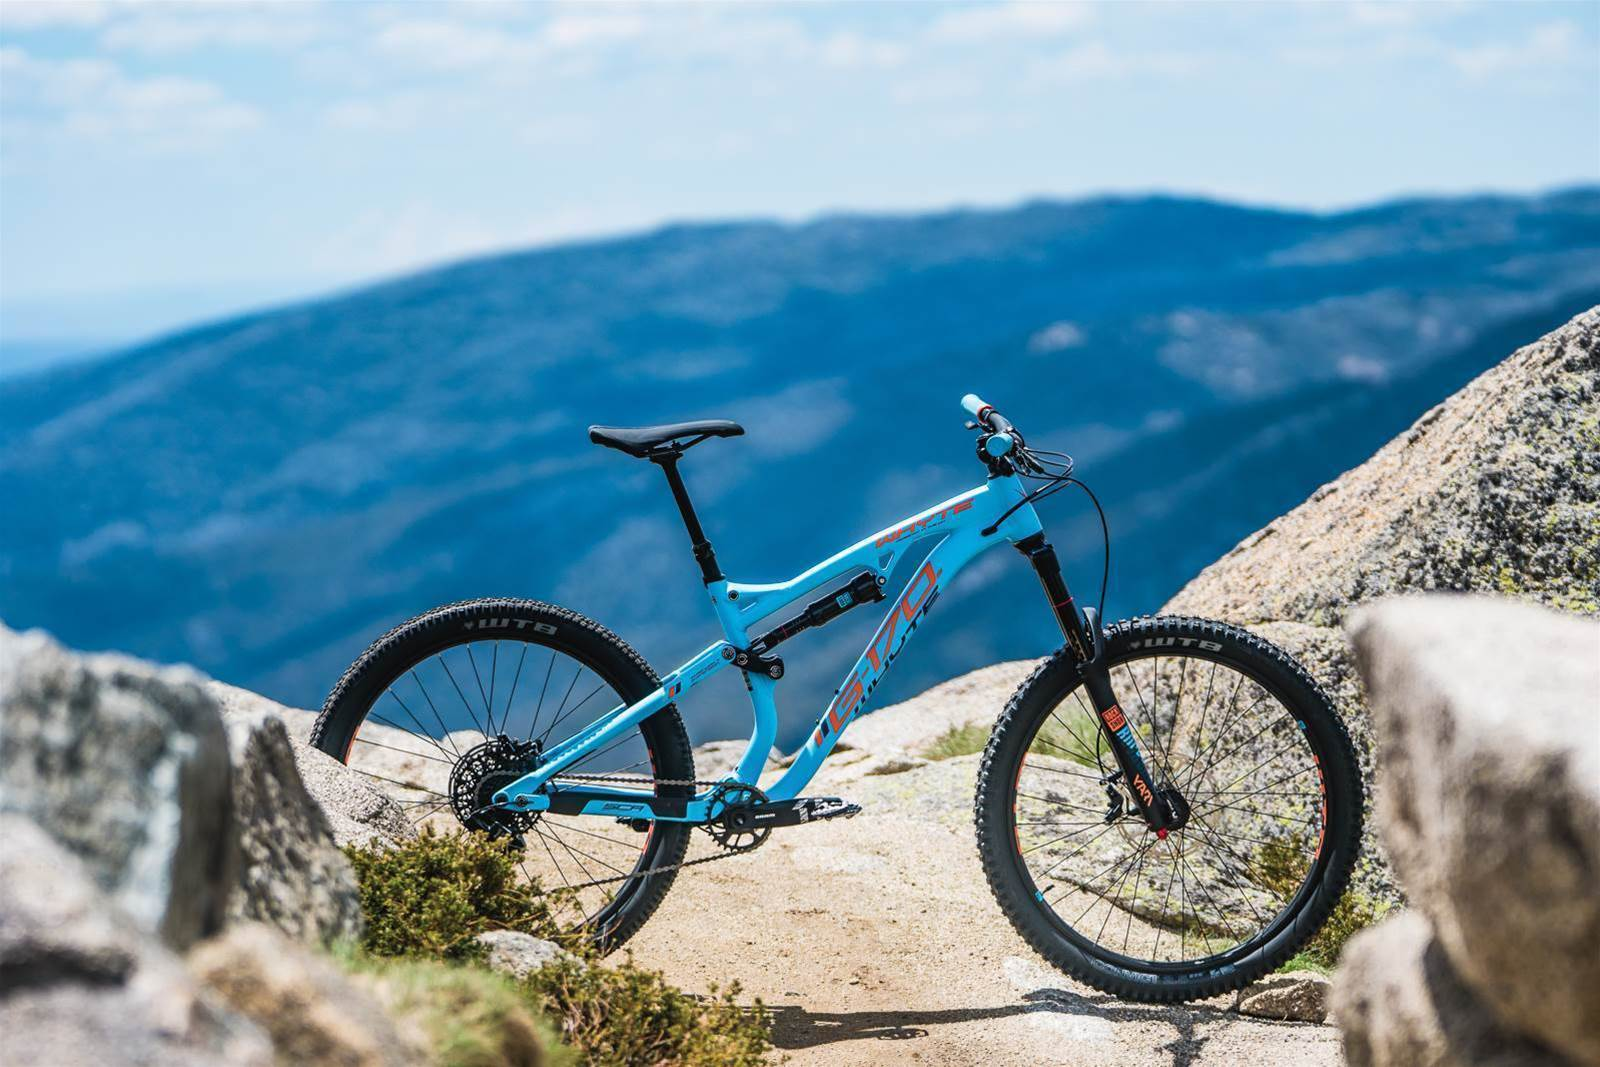 TESTED: WHYTE G-170 S